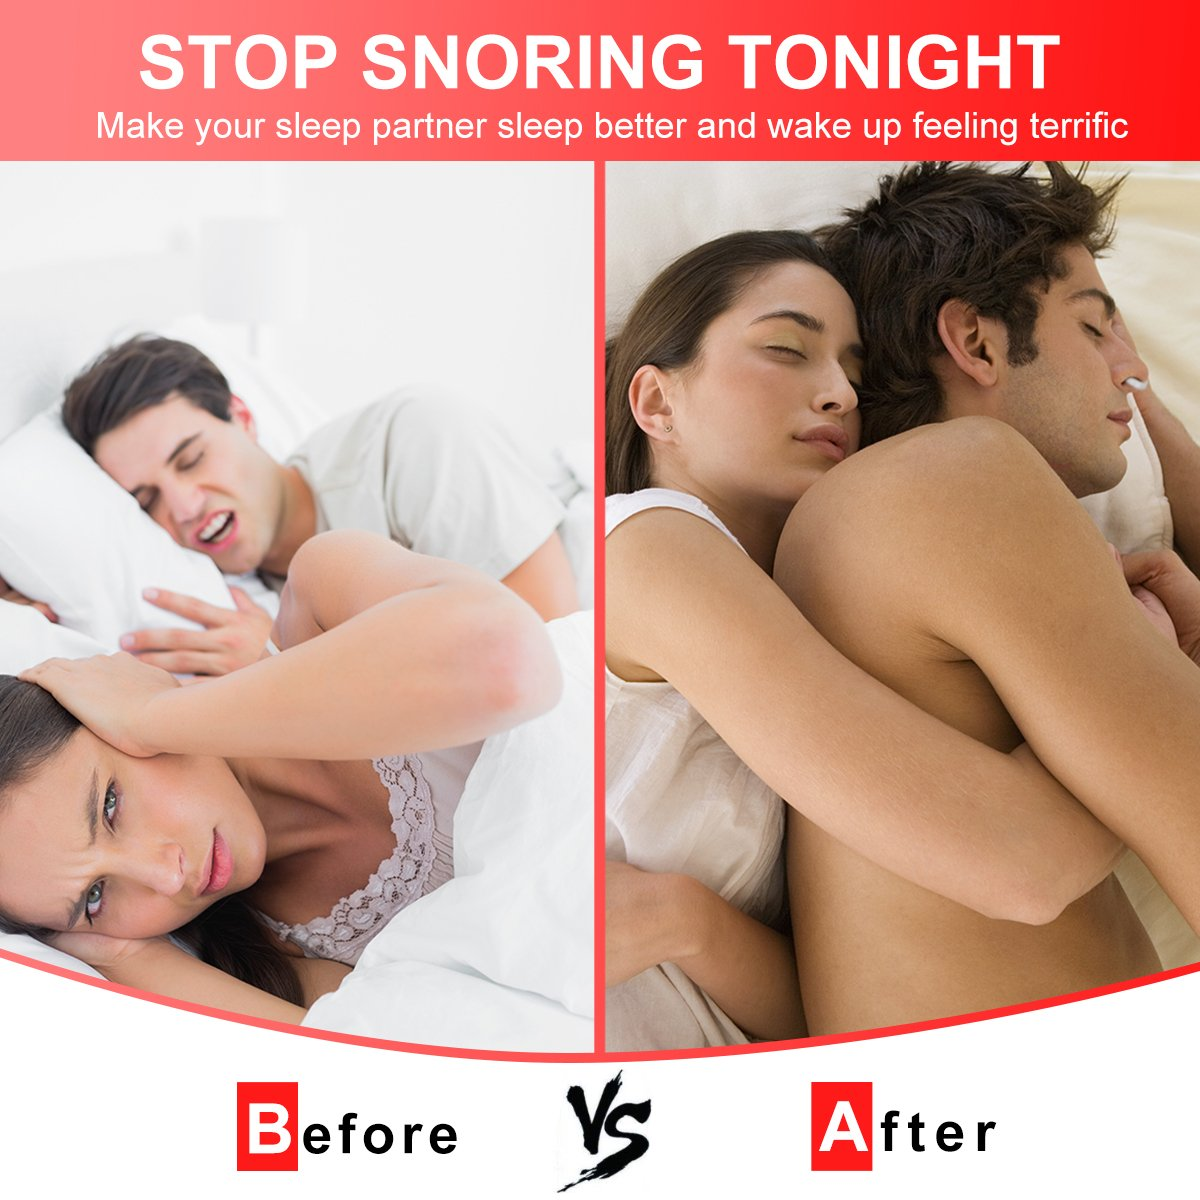 Anti Snoring Devices Tongue, 4 Set Snore Stopper Nose Vents Nasal Dilators Stop Snoring Solution Snoring Mouthpiece Sleep Aid Device Silicone Tongue Retainer for Men Women (Stop snoring Devices) by Usleepy (Image #4)